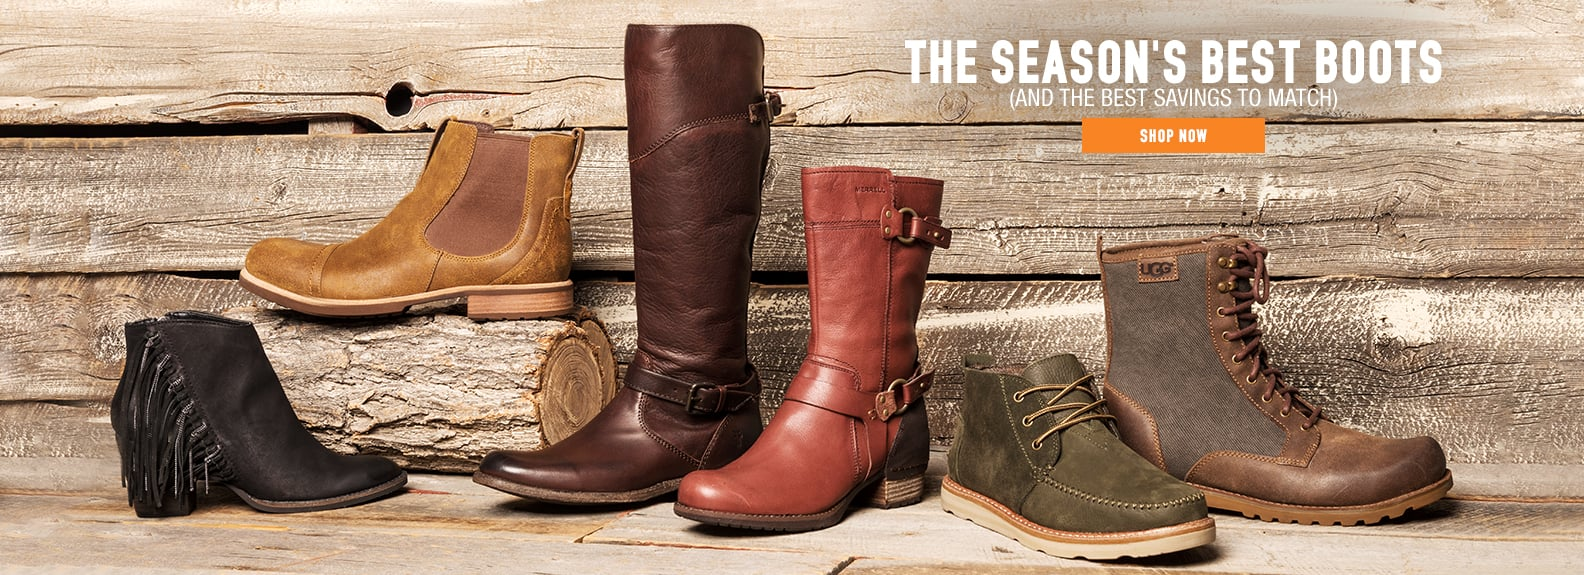 Boots for all occasions - 53% average savings